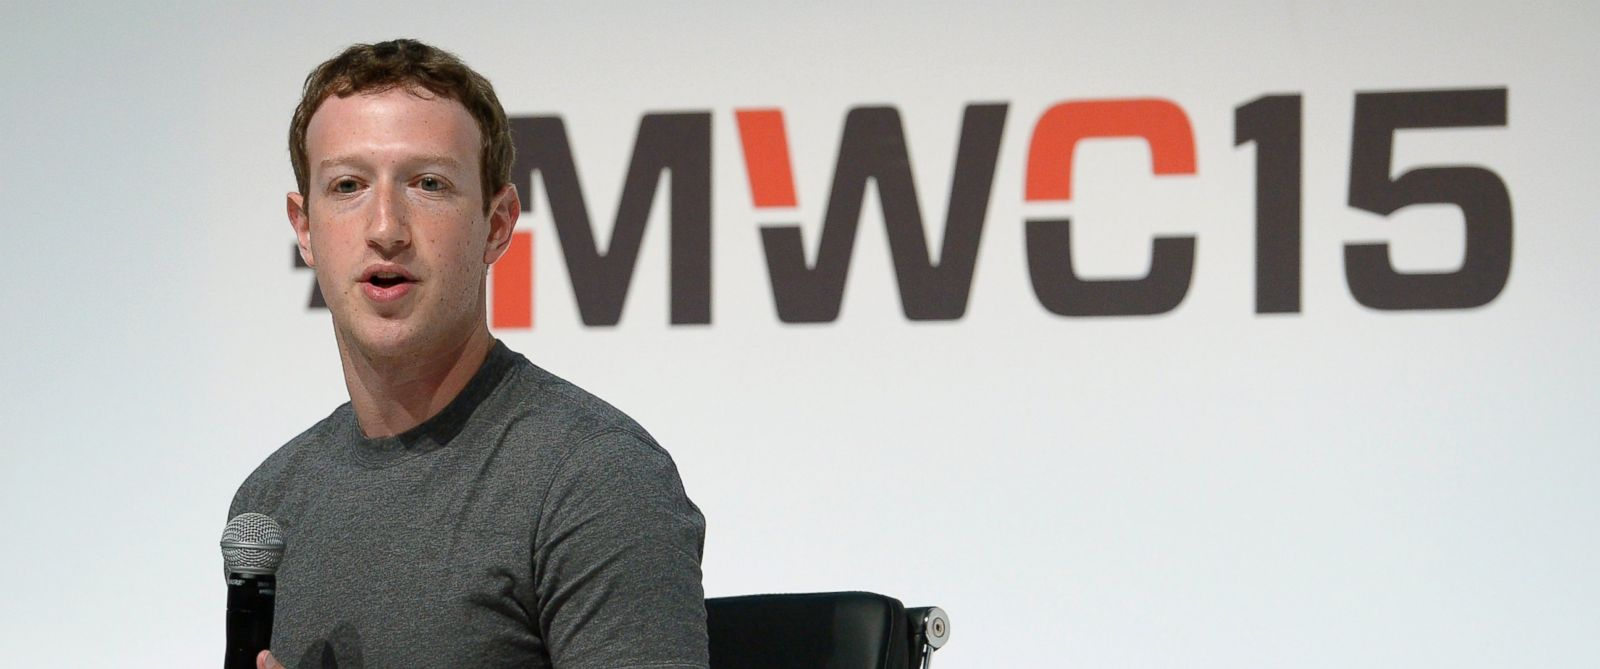 PHOTO: Facebook CEO Mark Zuckerberg speaks during a conference at the Mobile World Congress, the worlds largest mobile phone trade show in Barcelona, March 2, 2015.